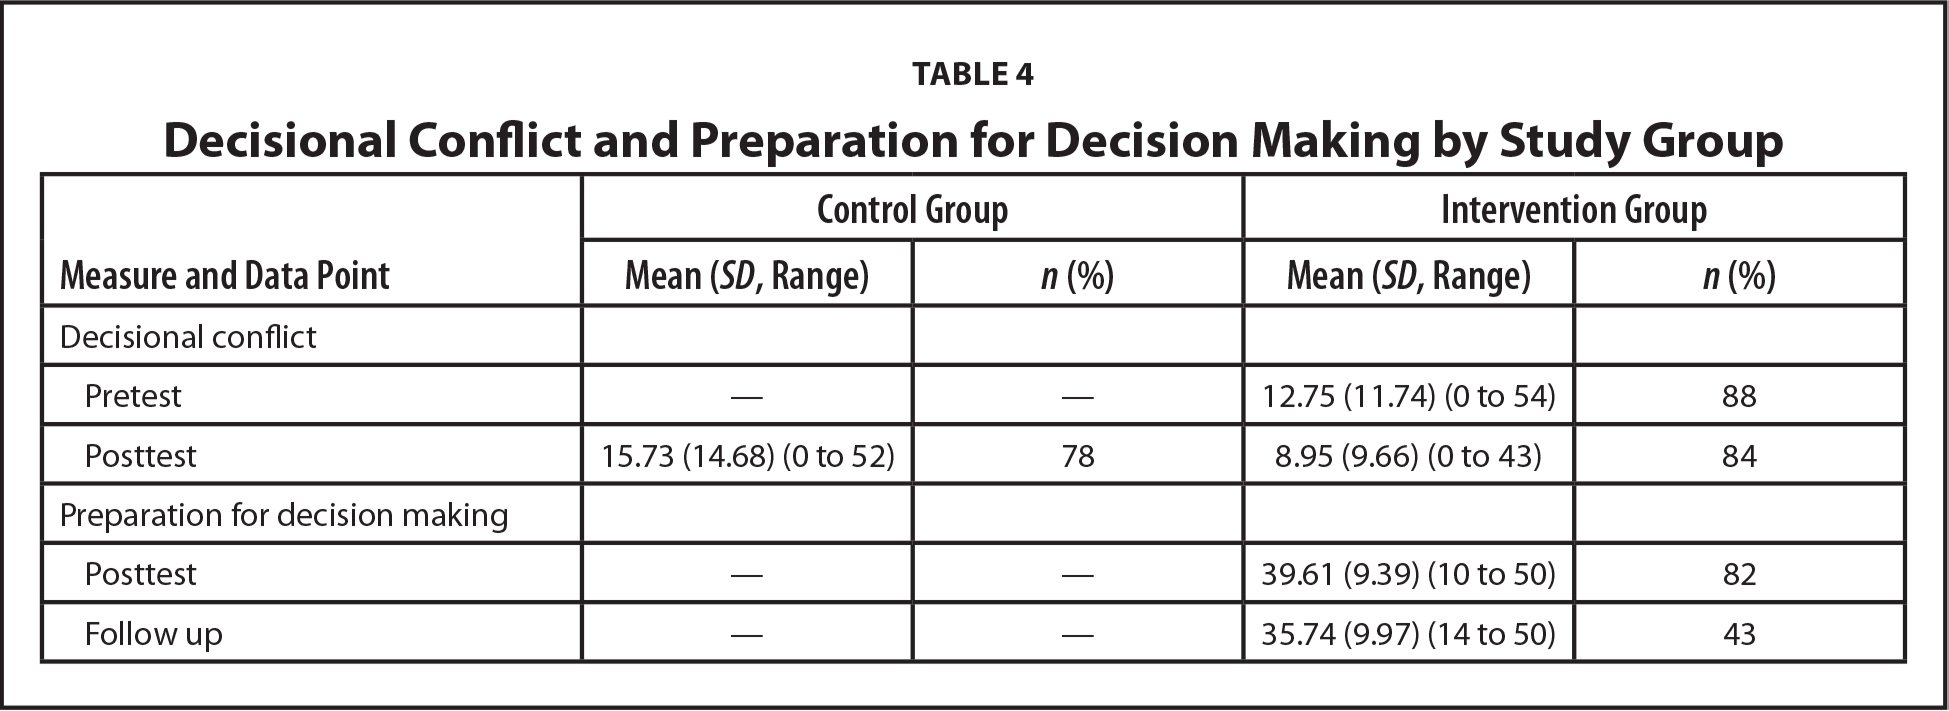 Decisional Conflict and Preparation for Decision Making by Study Group